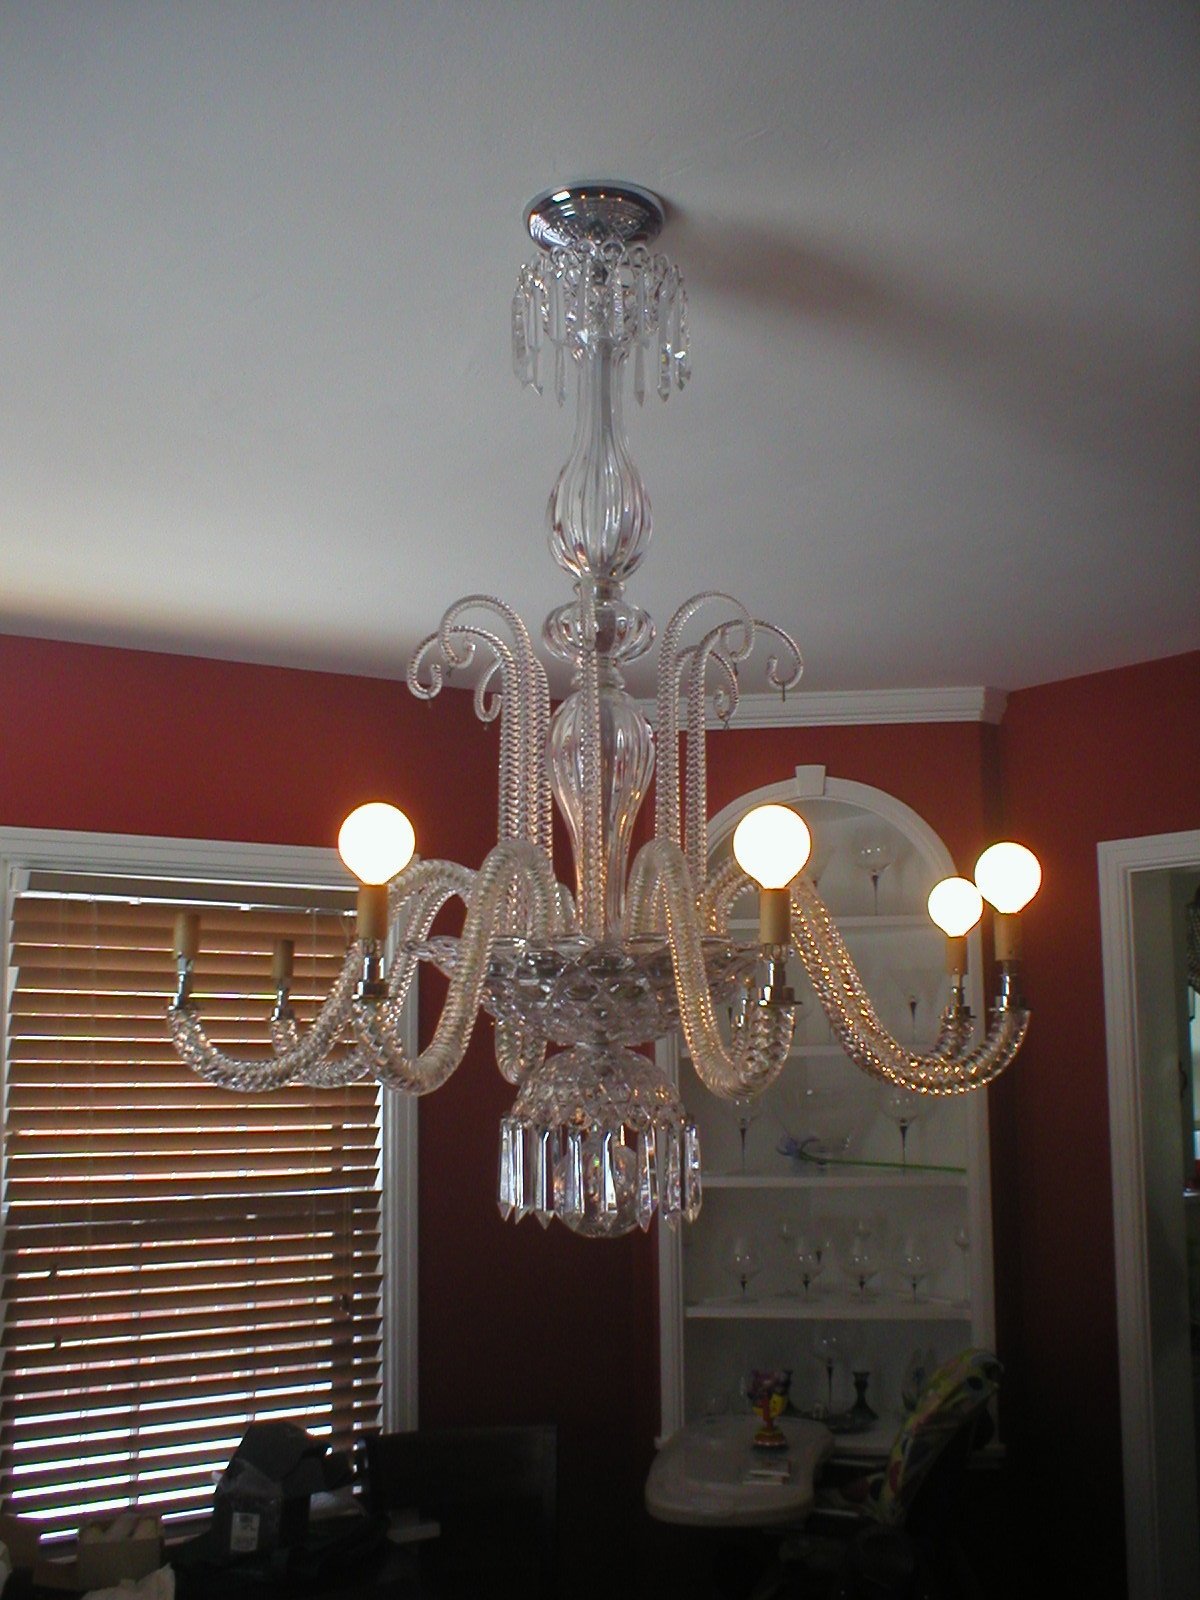 Pendant Lighting For High Ceilings High Ceiling Chandeliers Chandelier Online